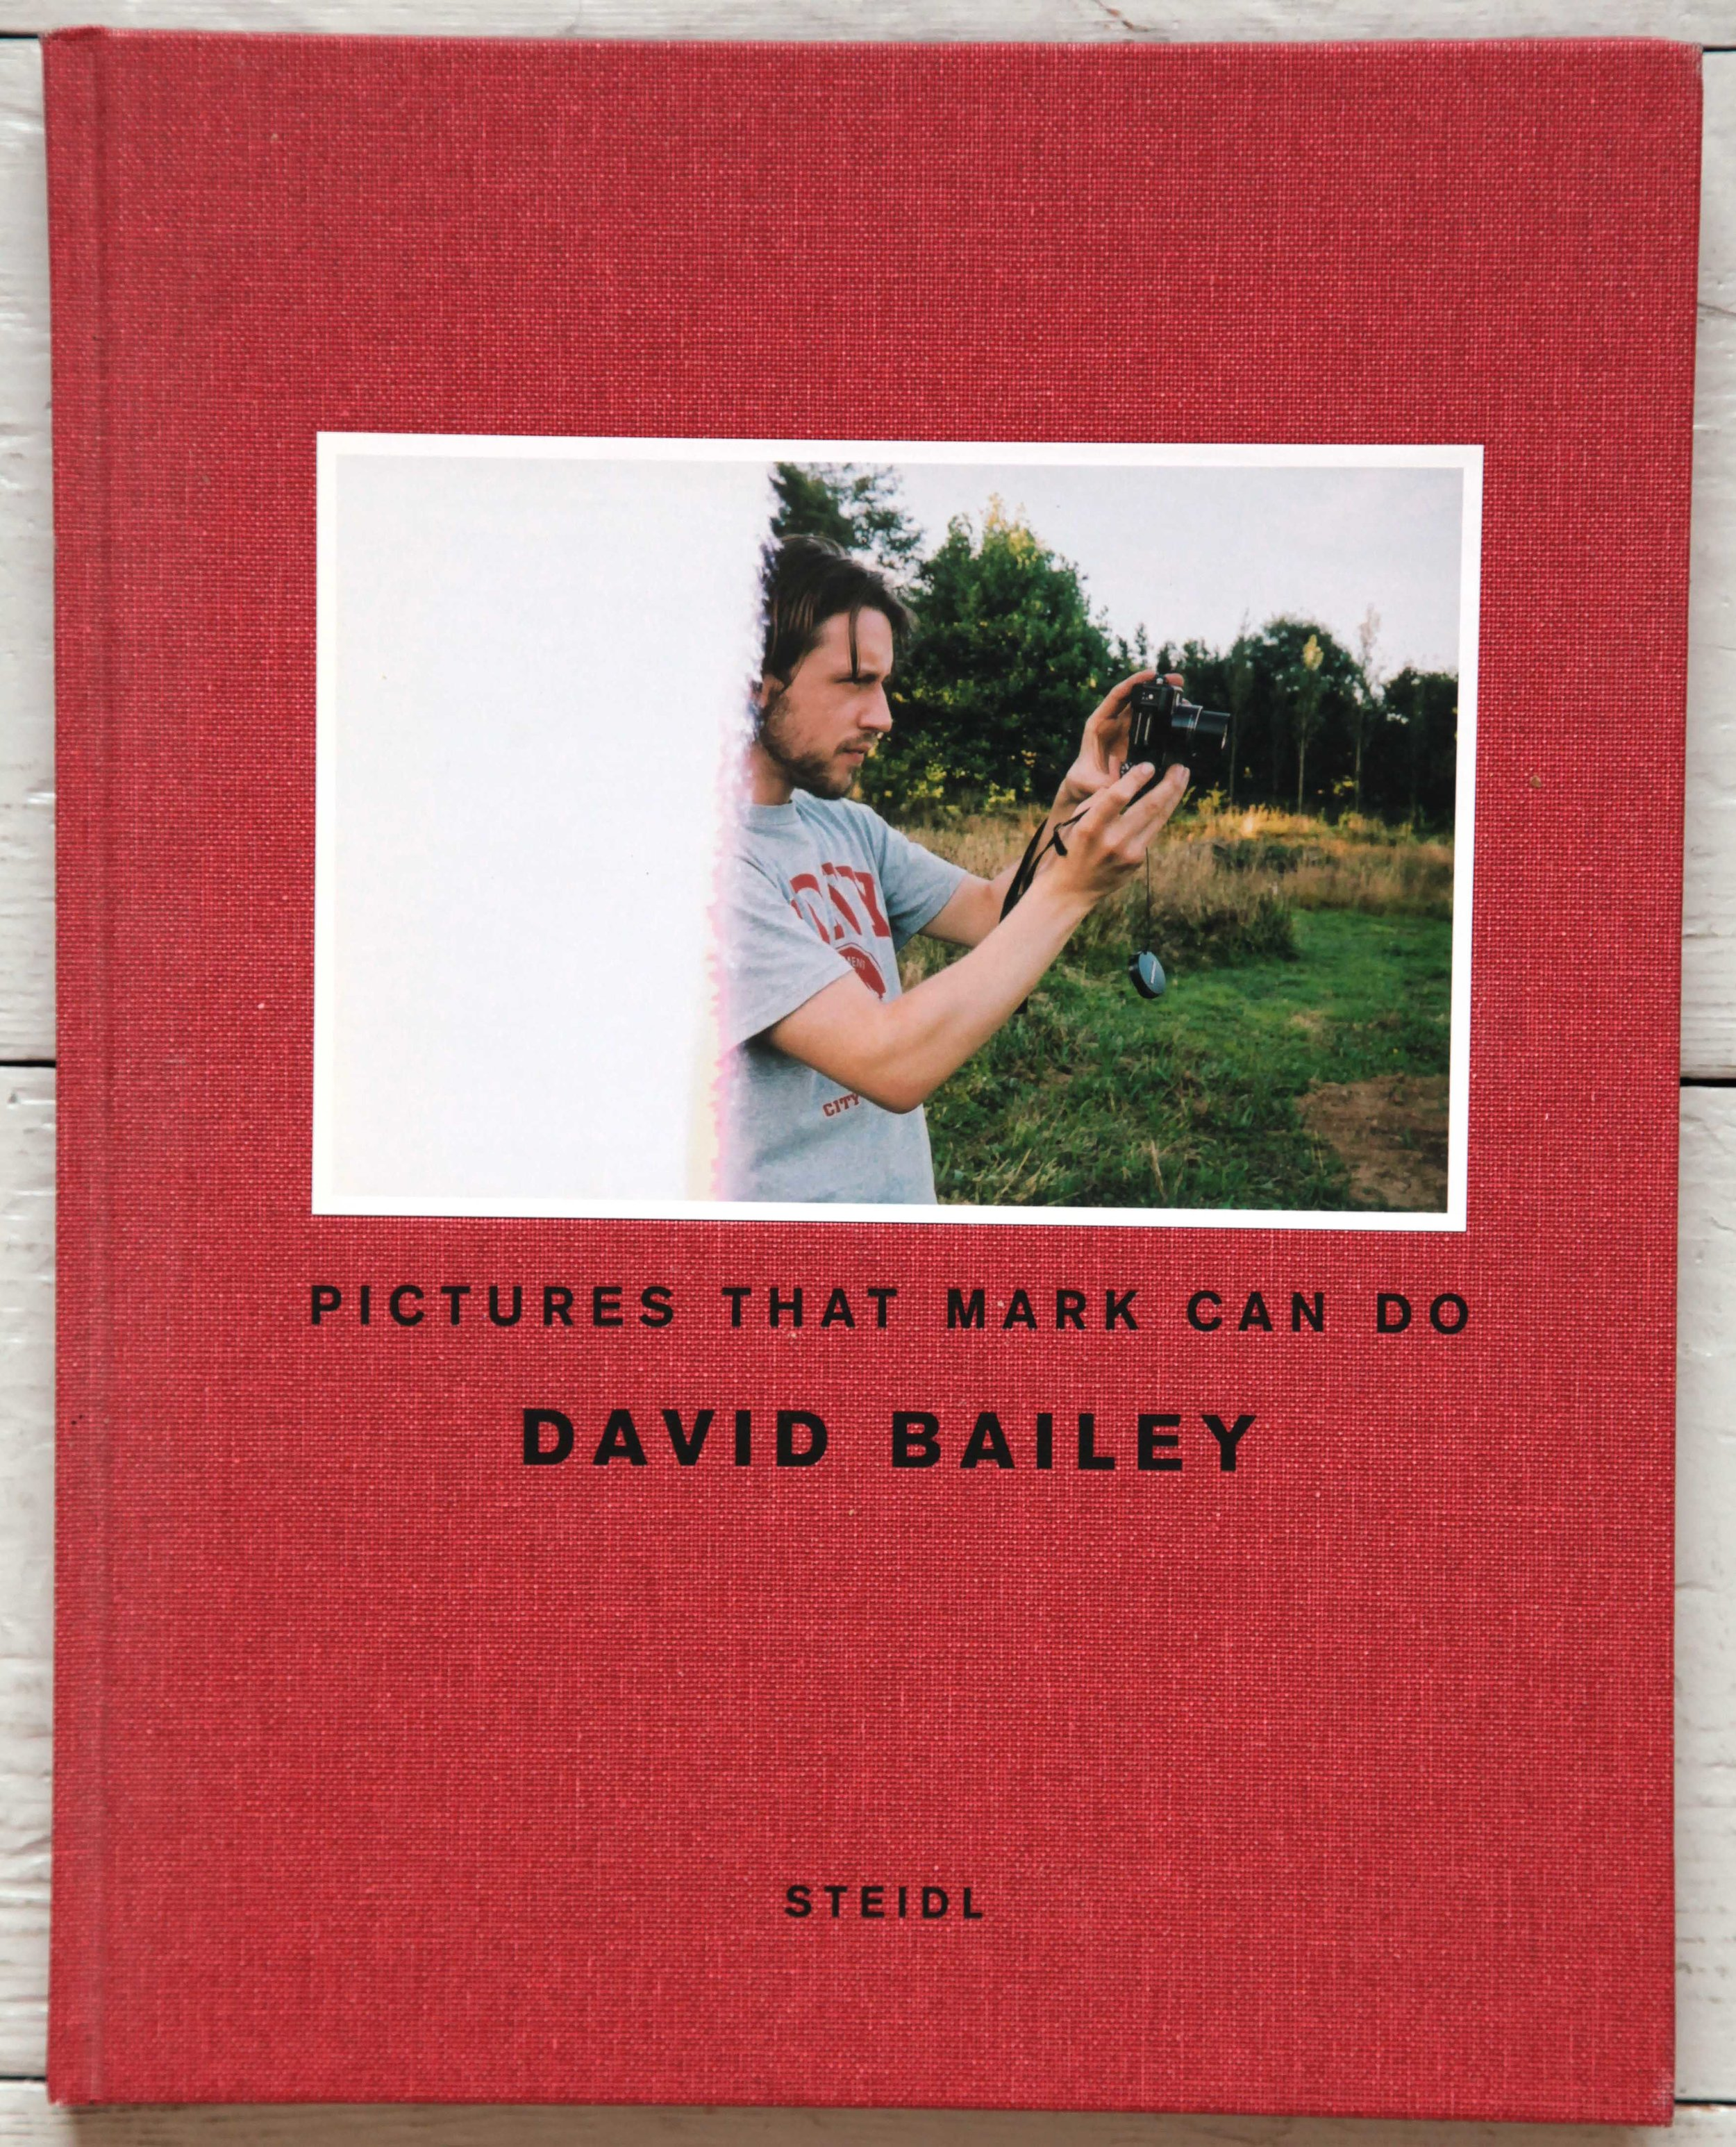 £100 Signed Copy of David Bailey's 'Pictures That Mark Can Do'. First edition. Published by Steidl, Gottingen (2007). Hardback. - The snapshot is a part of our visual culture and many photographs have been taken millions of times, with just slight variations, such as the identity of the people in a family portrait. Bailey also takes such snaps, images imbued with a sense of ease and freedom yet which in his hands carry much greater weight and significance. He believes these photographs appear so easy that even Mark, his assistant, could have made them. But Mark didn't sign this copy, David Bailey did! This is a second-hand copy kindly donated by Brett Rogers, Director Photographers' Gallery.